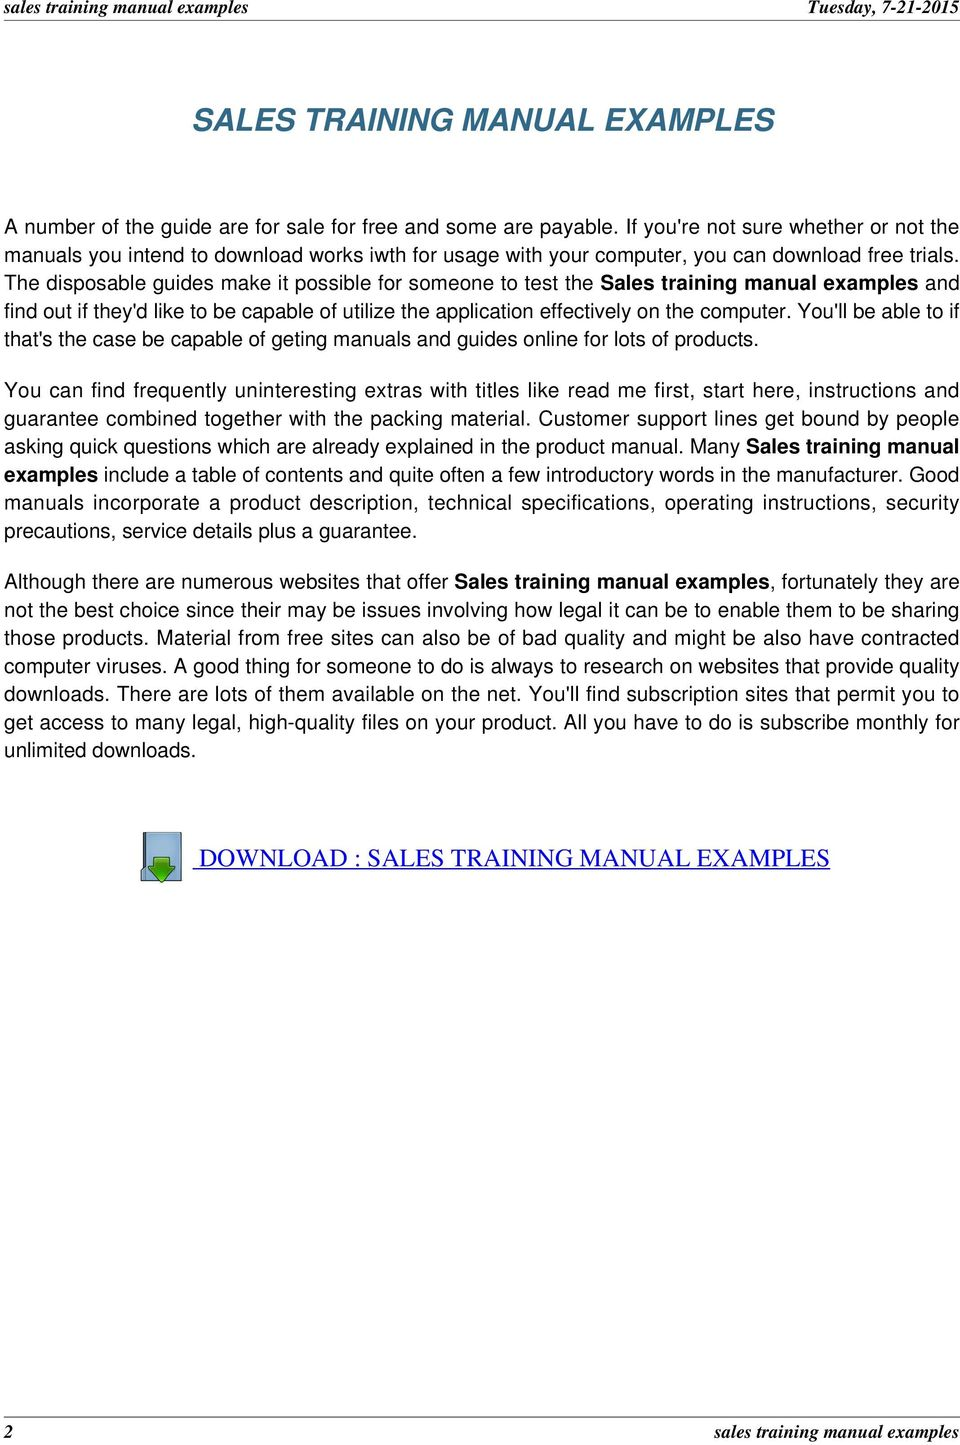 sales training manual examples pdf